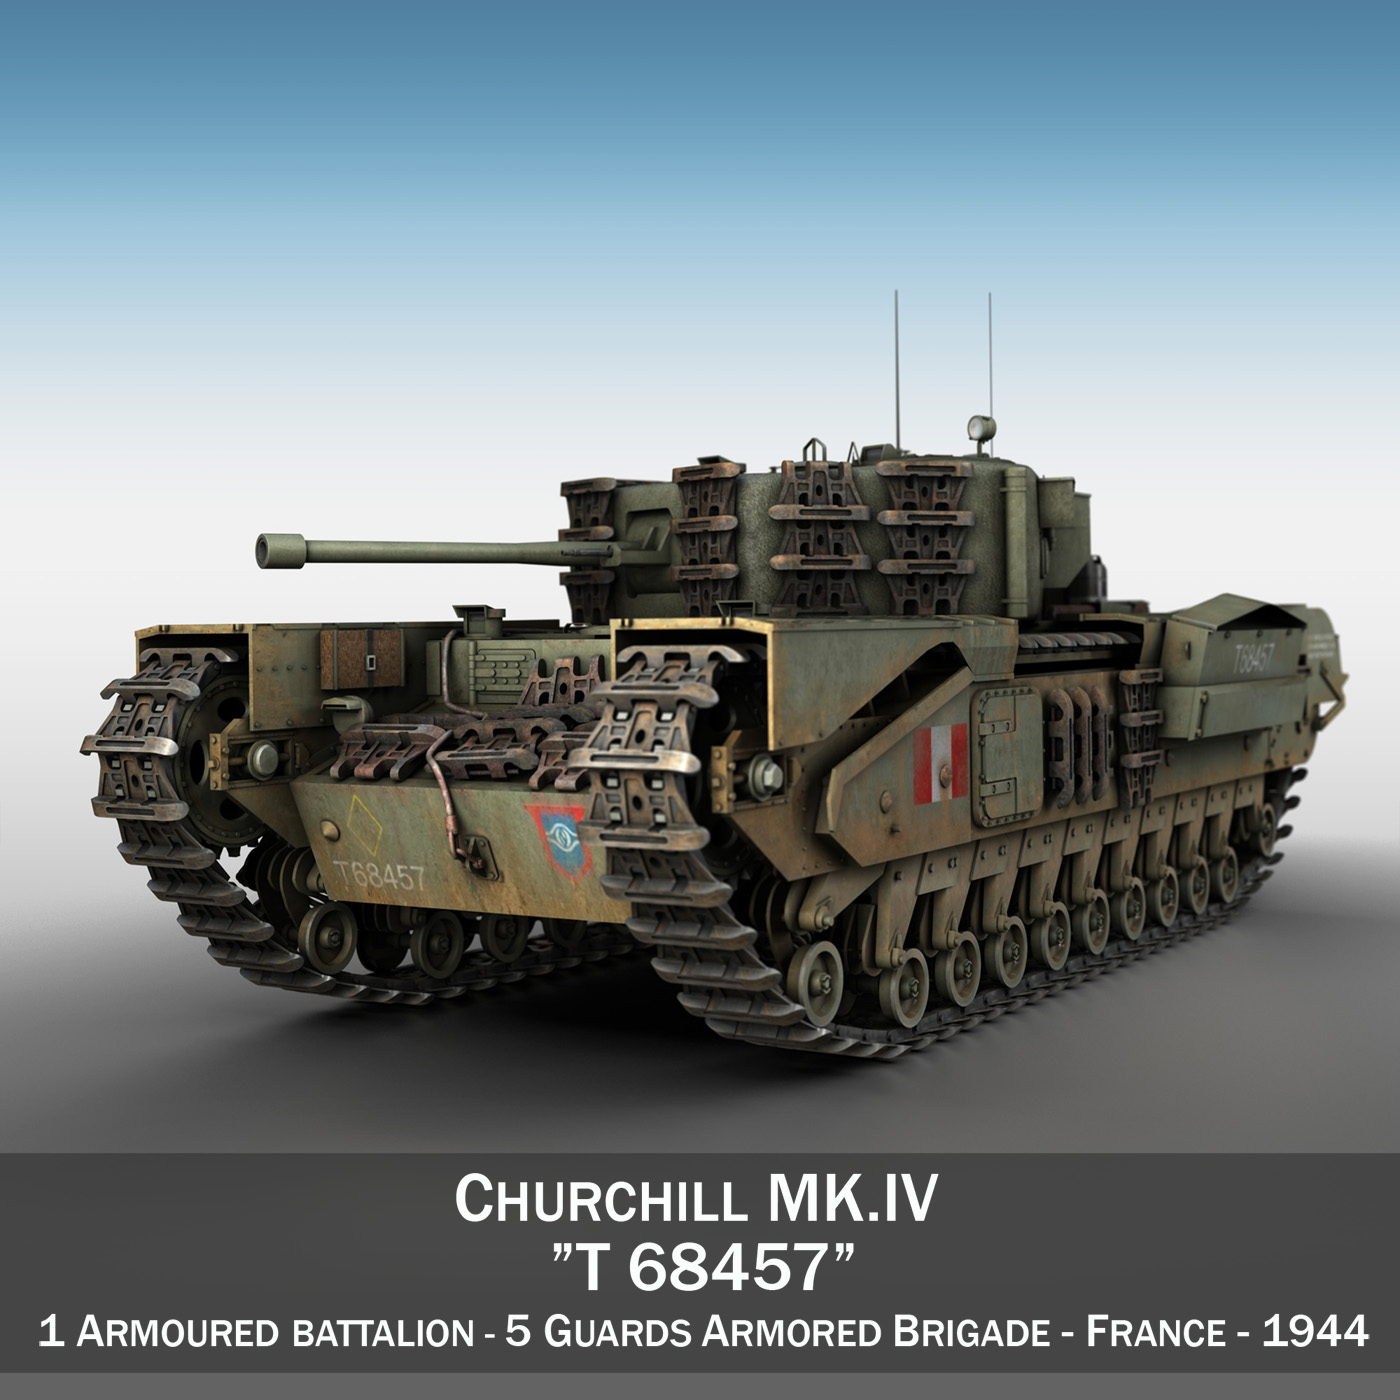 churchill mk.iv – t68457 3d model 3ds fbx c4d lwo obj 271977